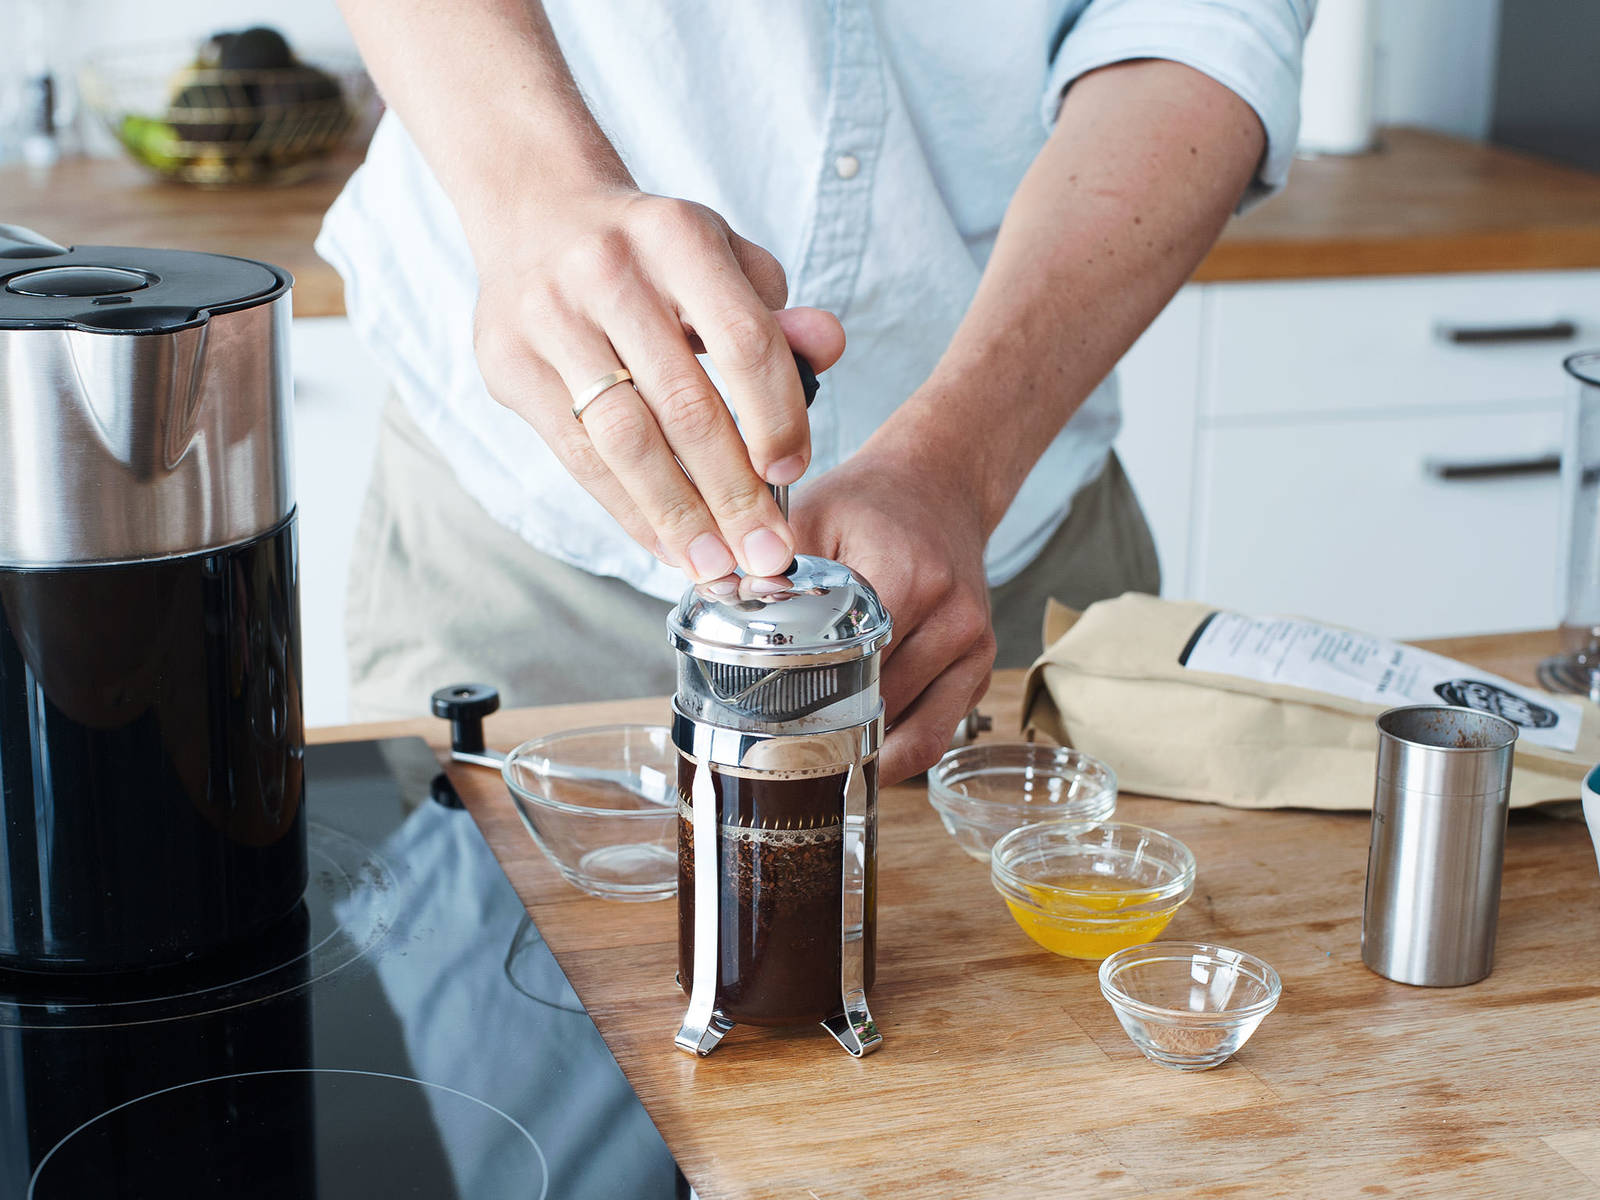 Prepare fresh coffee according to your preferred method using filtered water and a stovetop espresso pot or a French press.